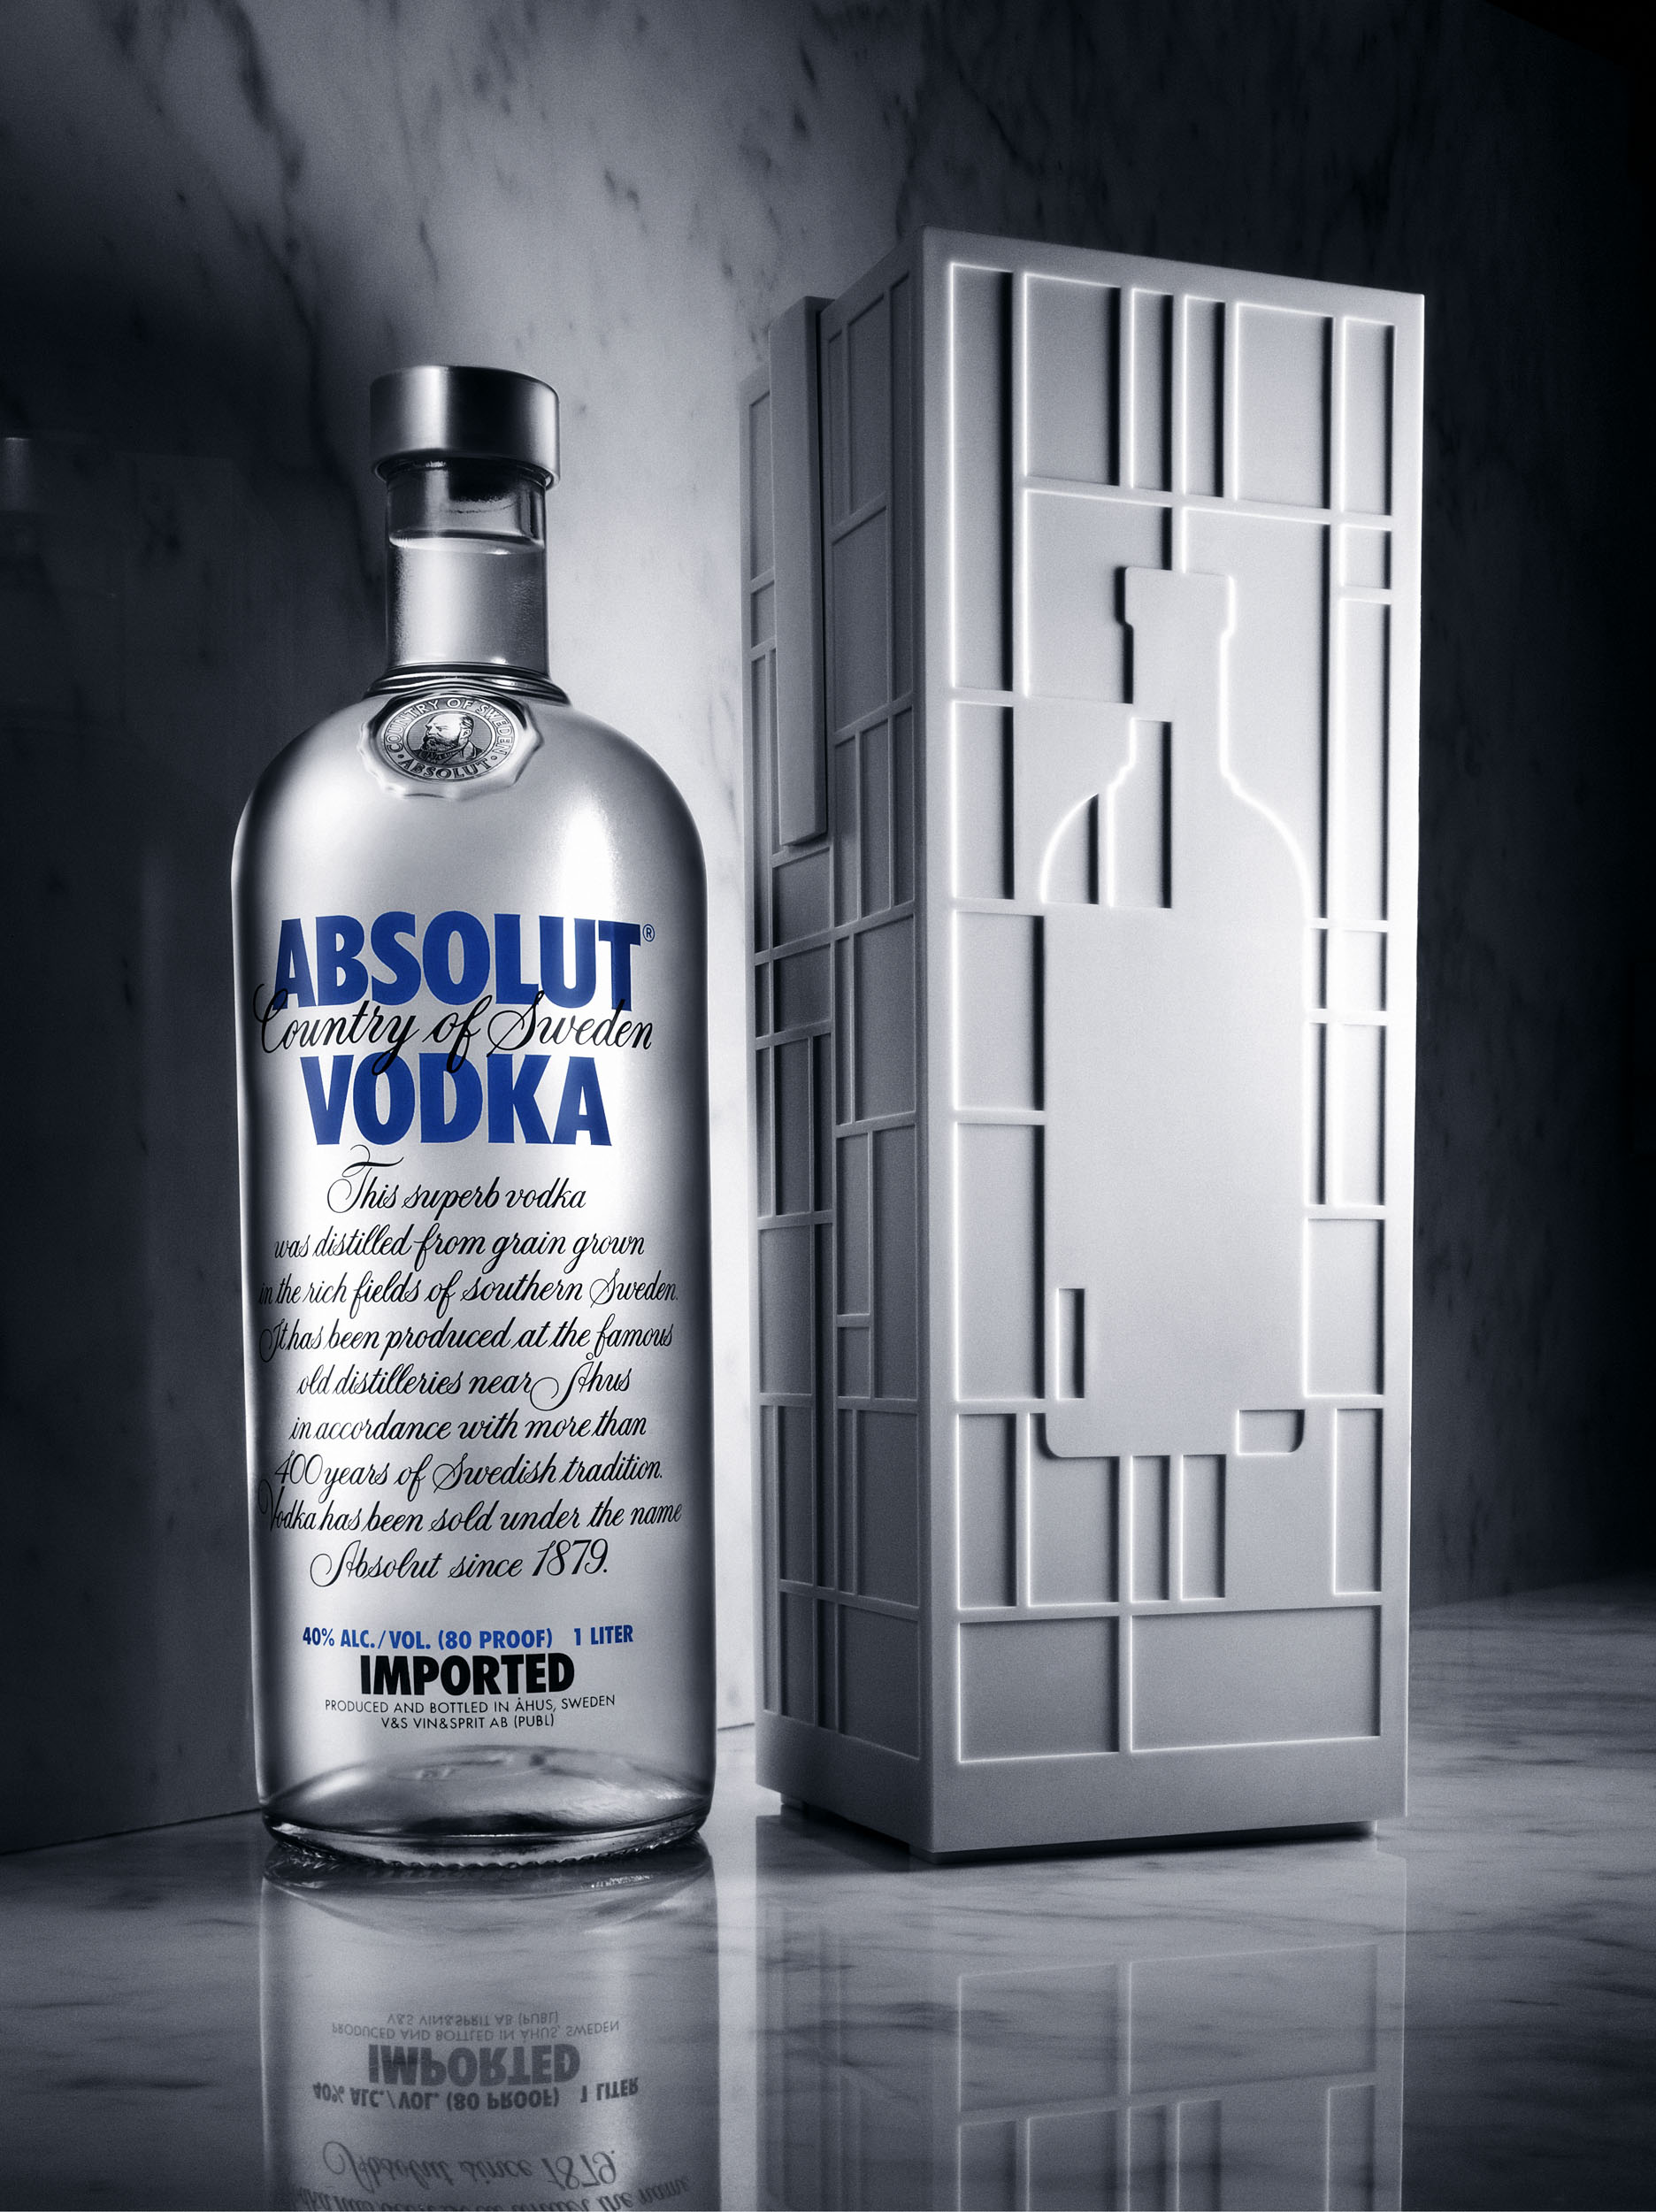 jensmortensen-absolut-vodka-c7630967